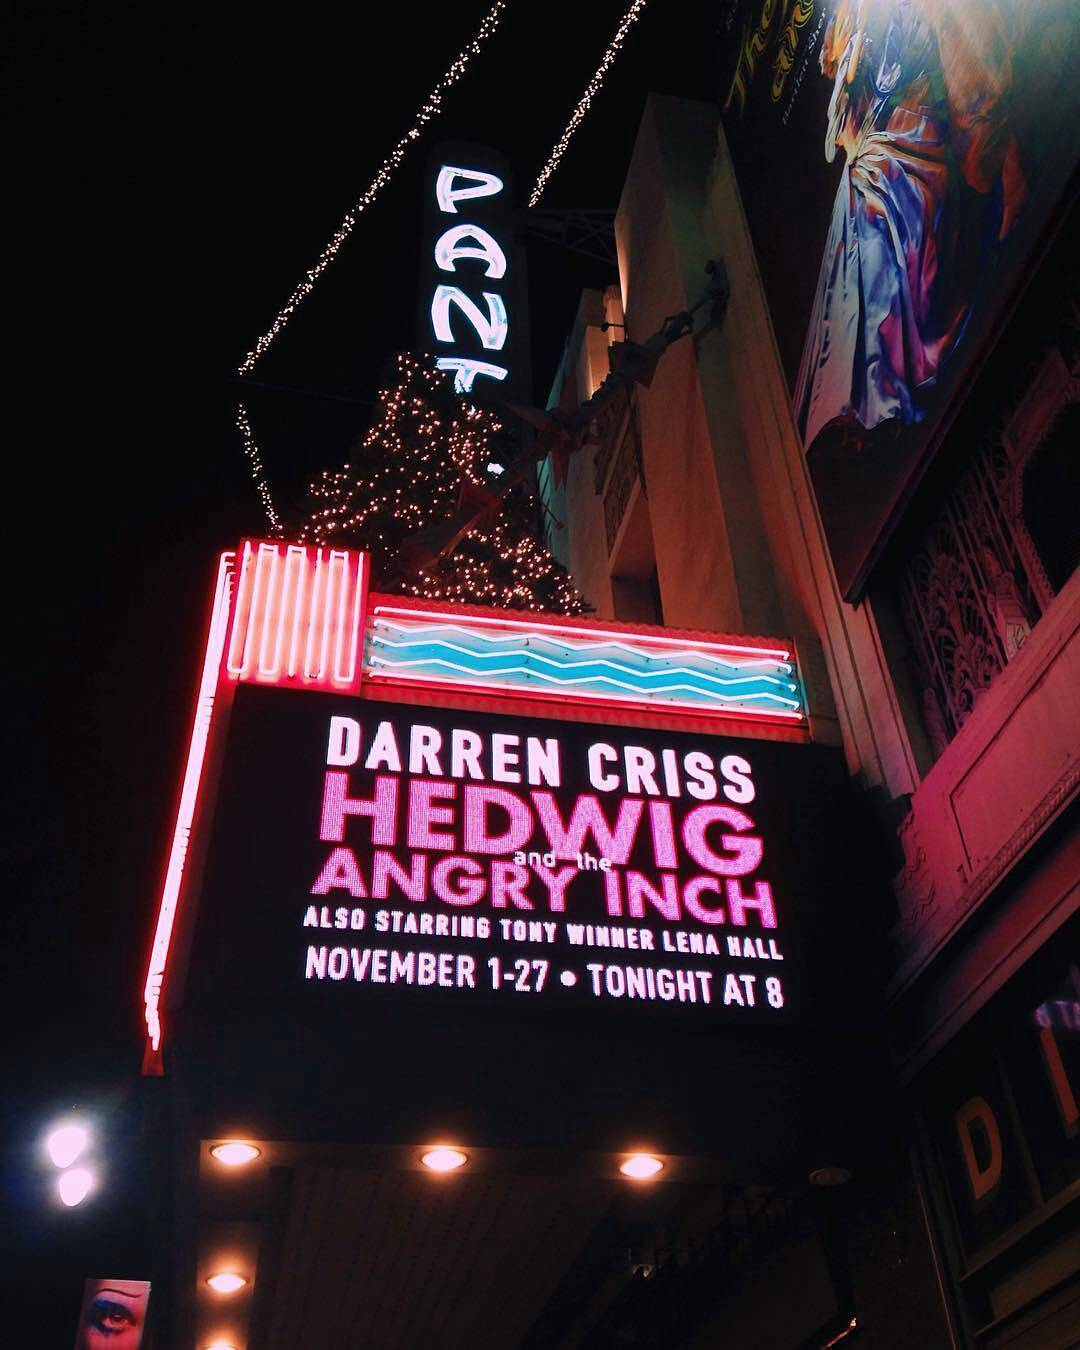 Theatre - Fan Reviews, Media Reviews, and comments from members of the Media, about Darren in Hedwig and the Angry Inch--SF and L.A. Tour  - Page 5 Tumblr_ogexxp1bfU1ubd9qxo1_1280